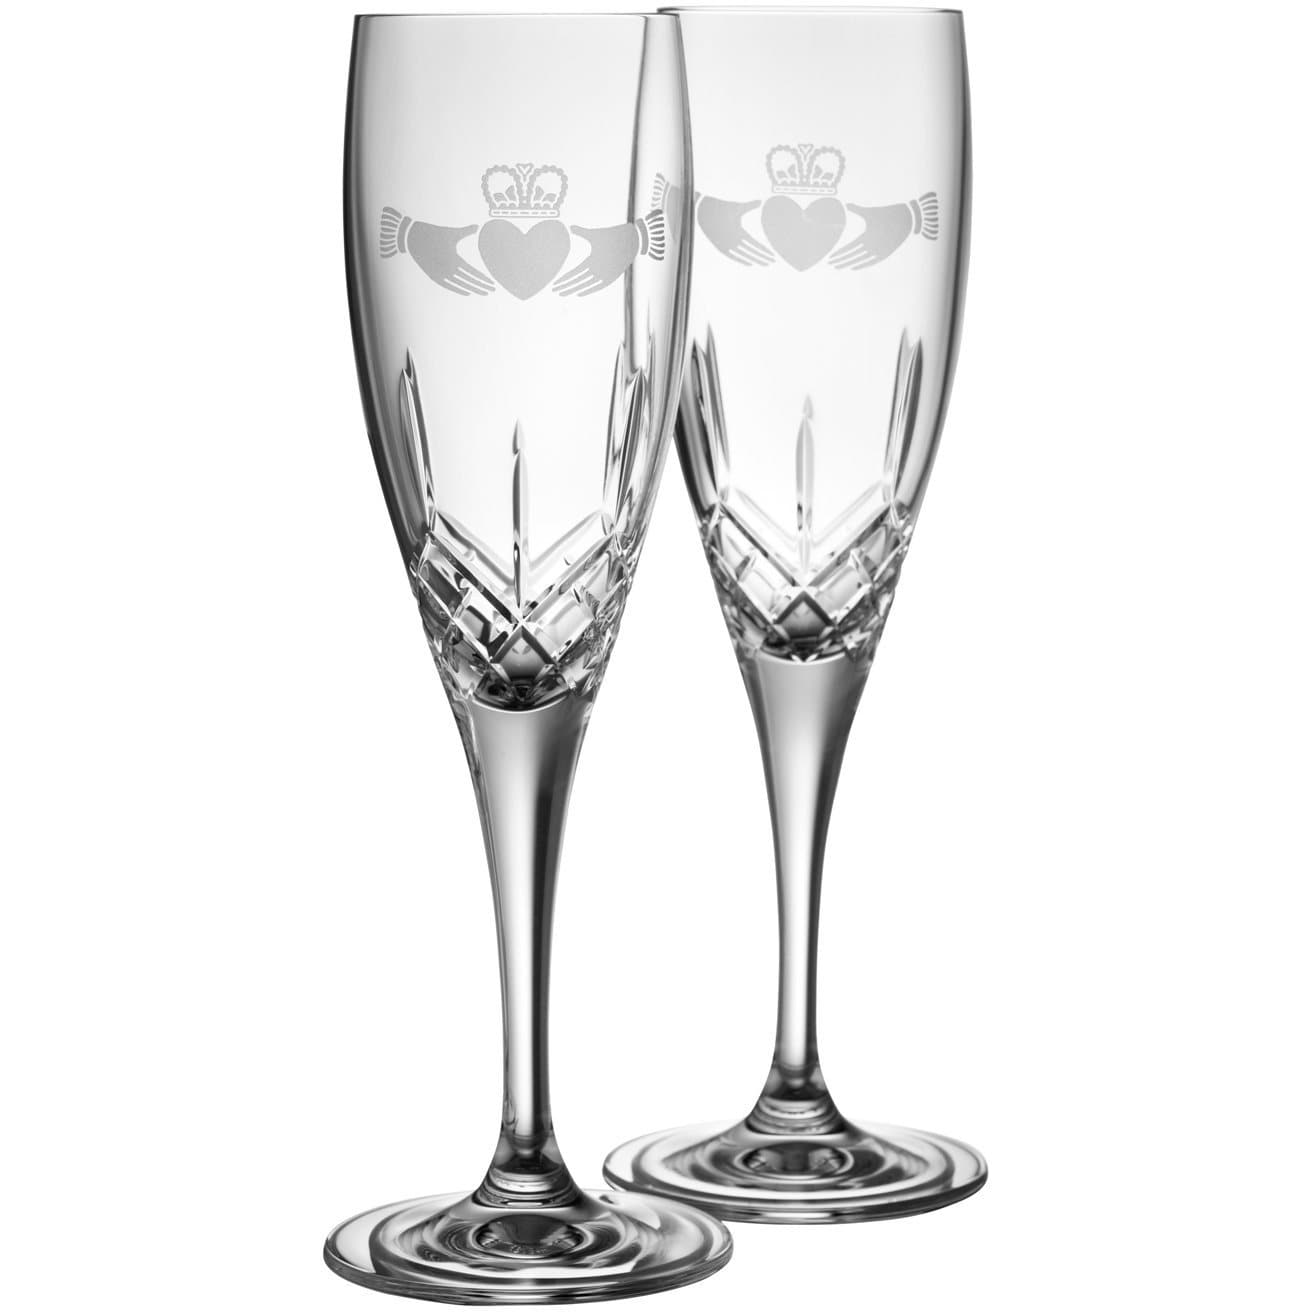 NEW Claddagh Flute Pair - Galway Irish Crystal